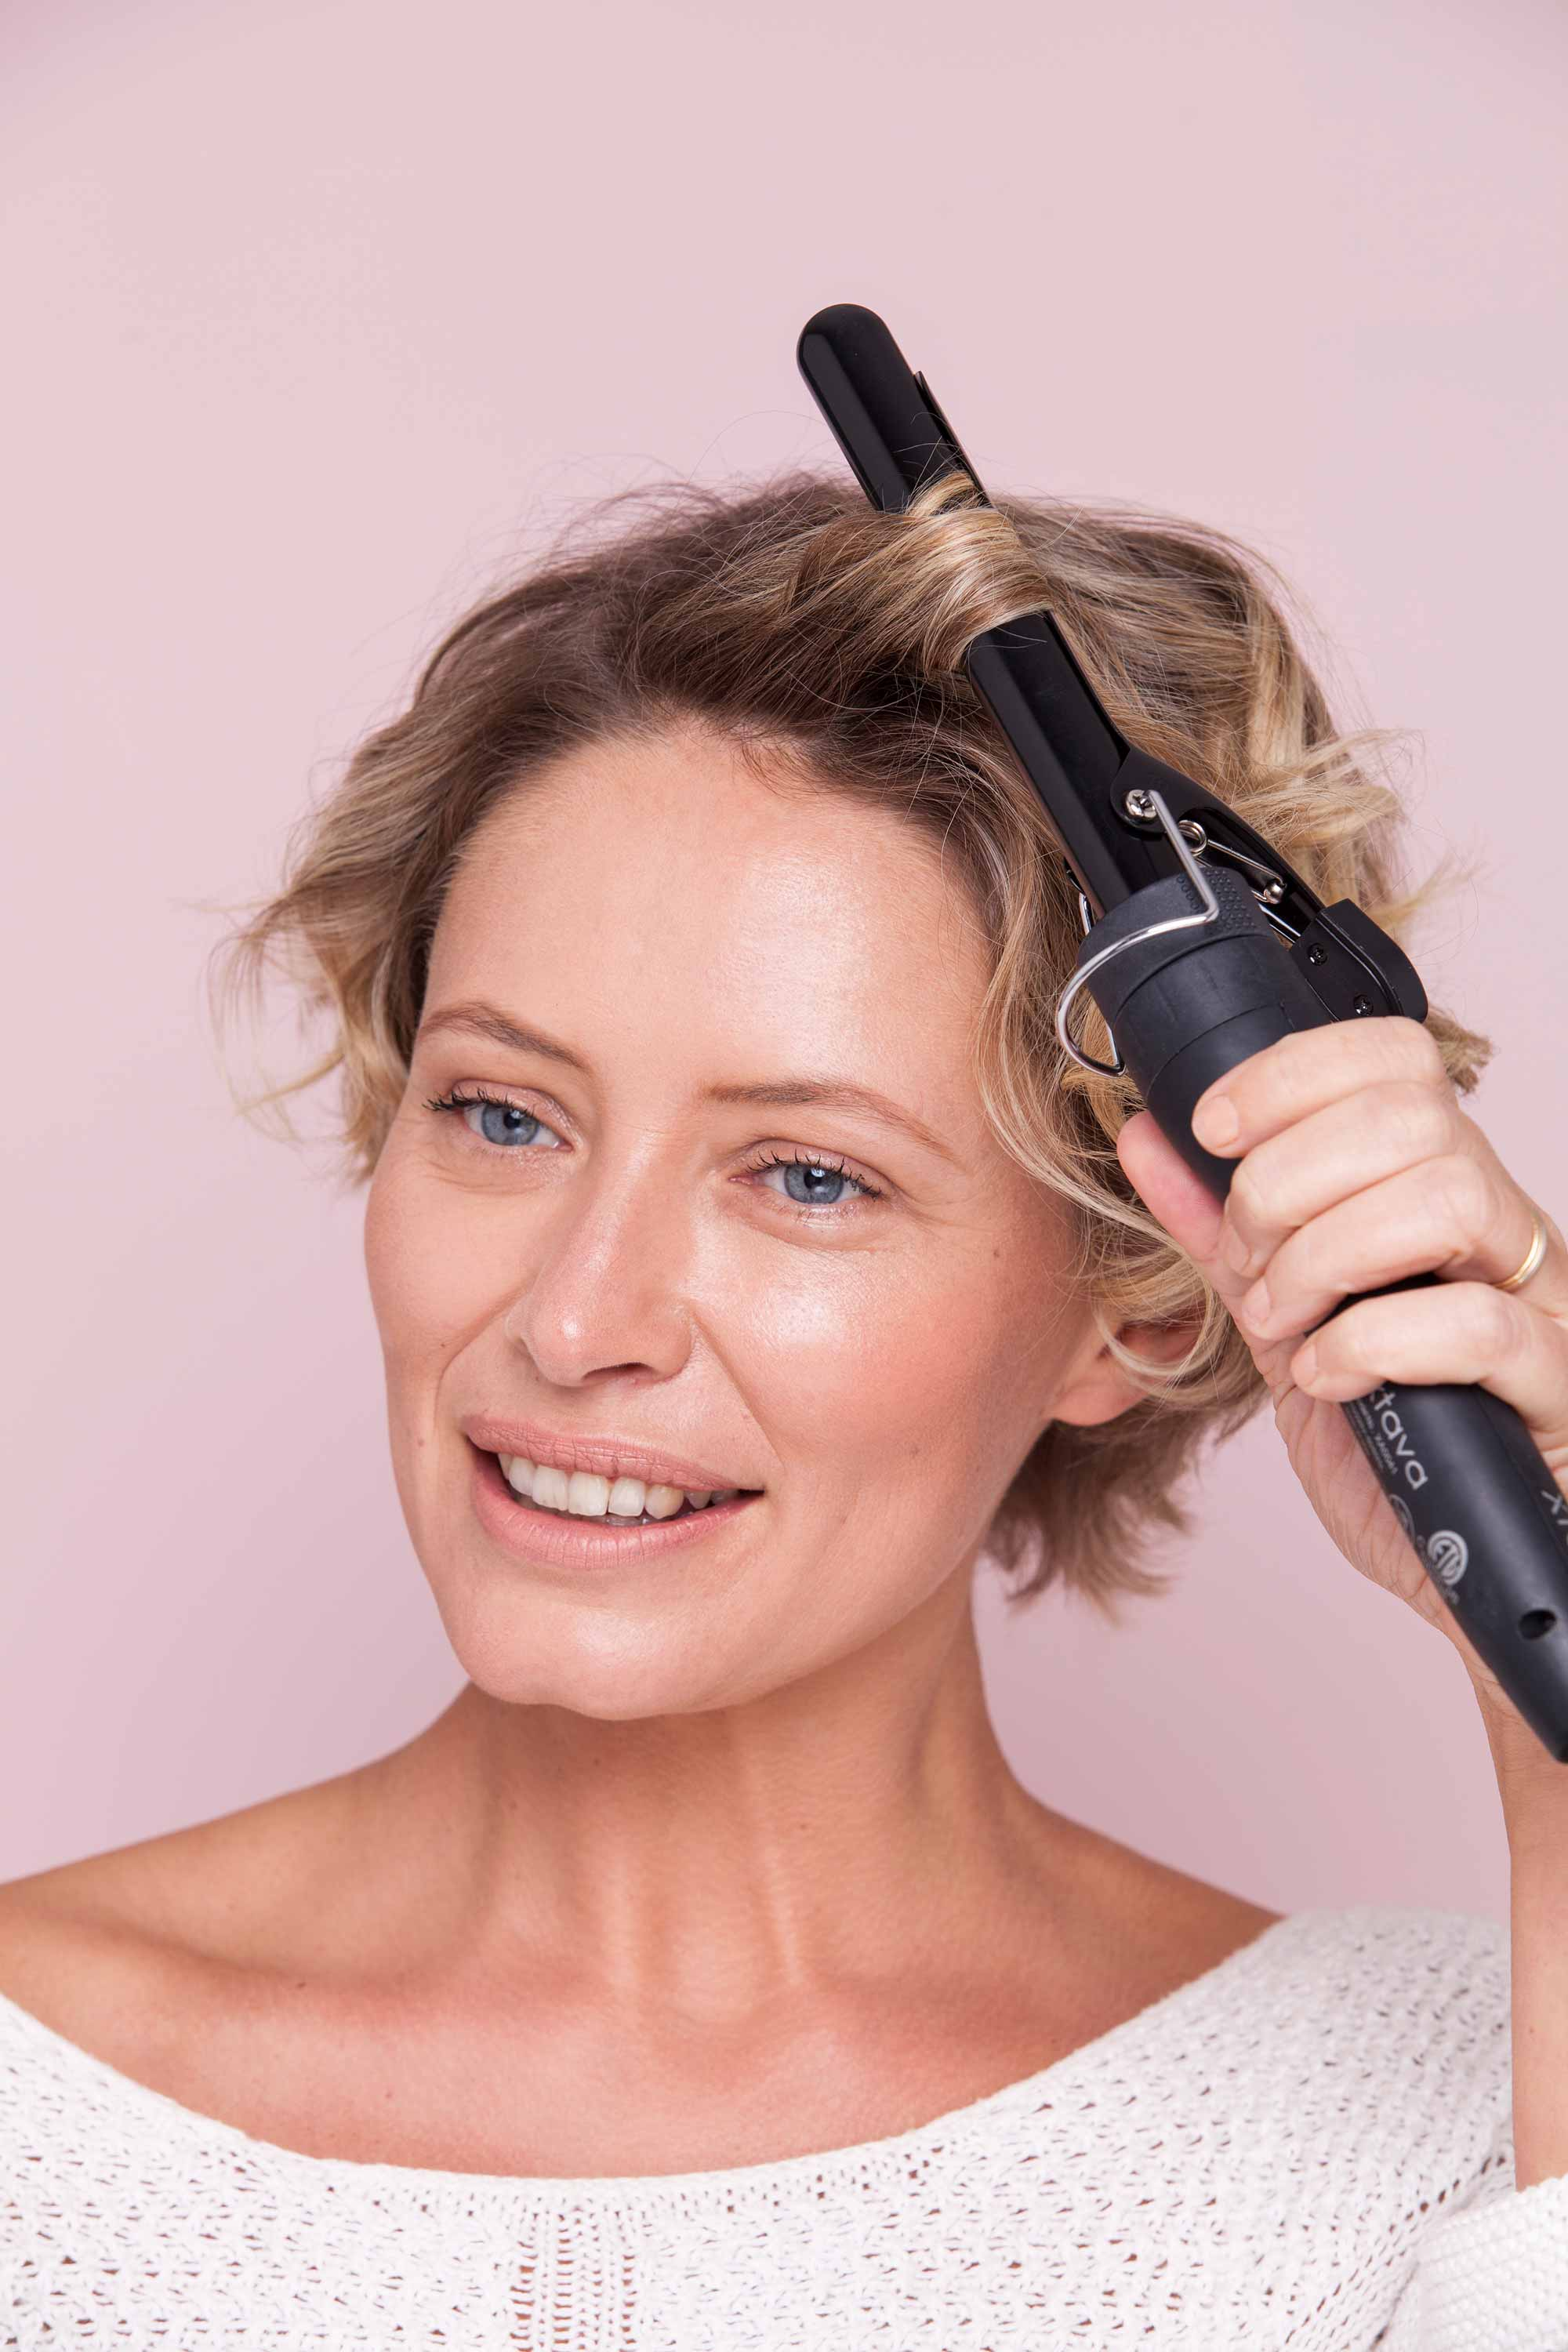 Curling Iron Buying Guide Everything You Need To Know